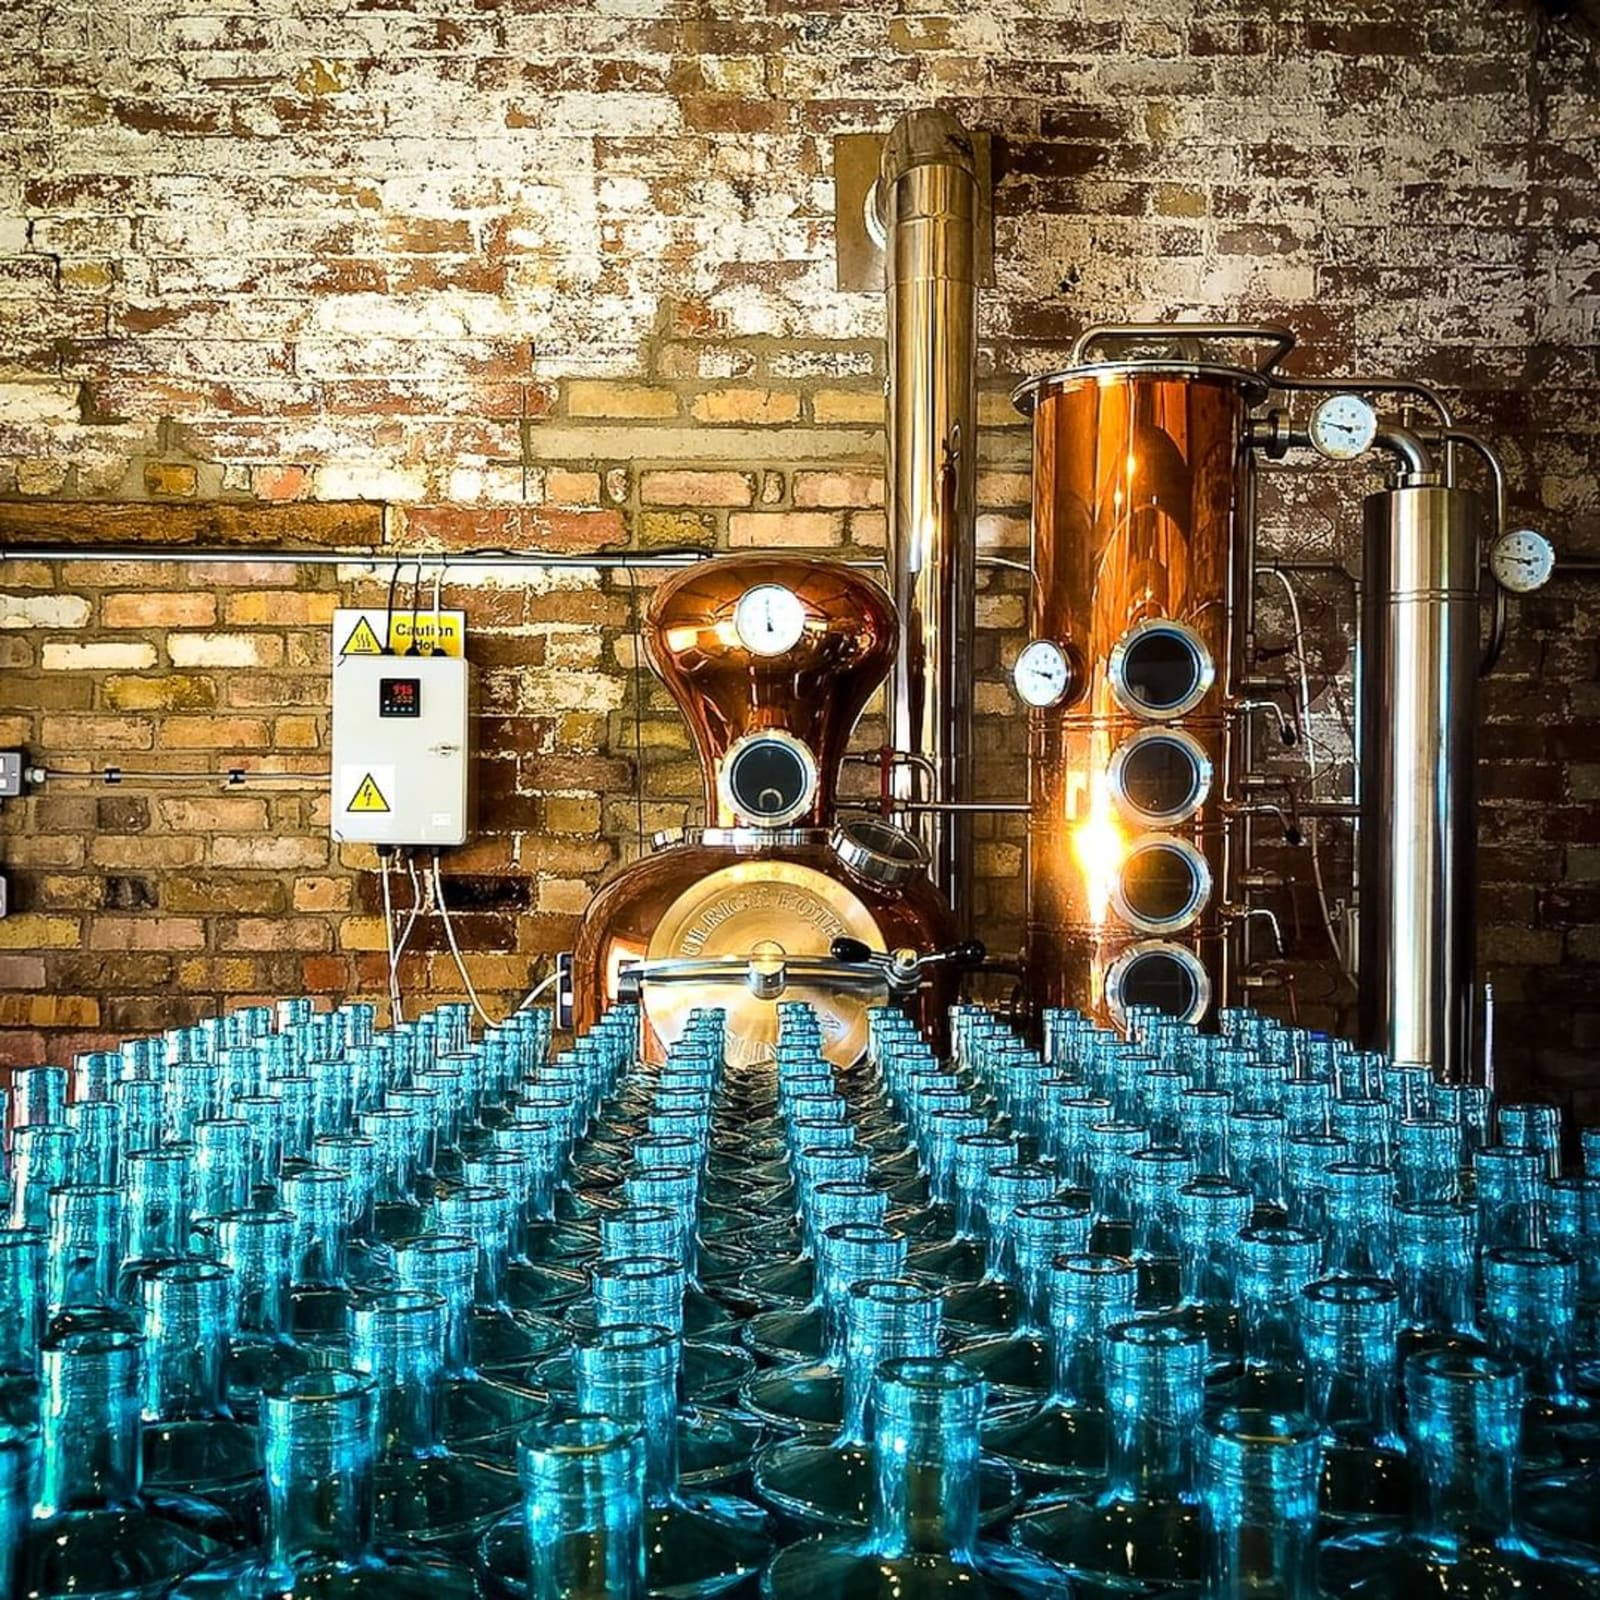 Image from the Roundwood Gin distillery with blue gin bottles